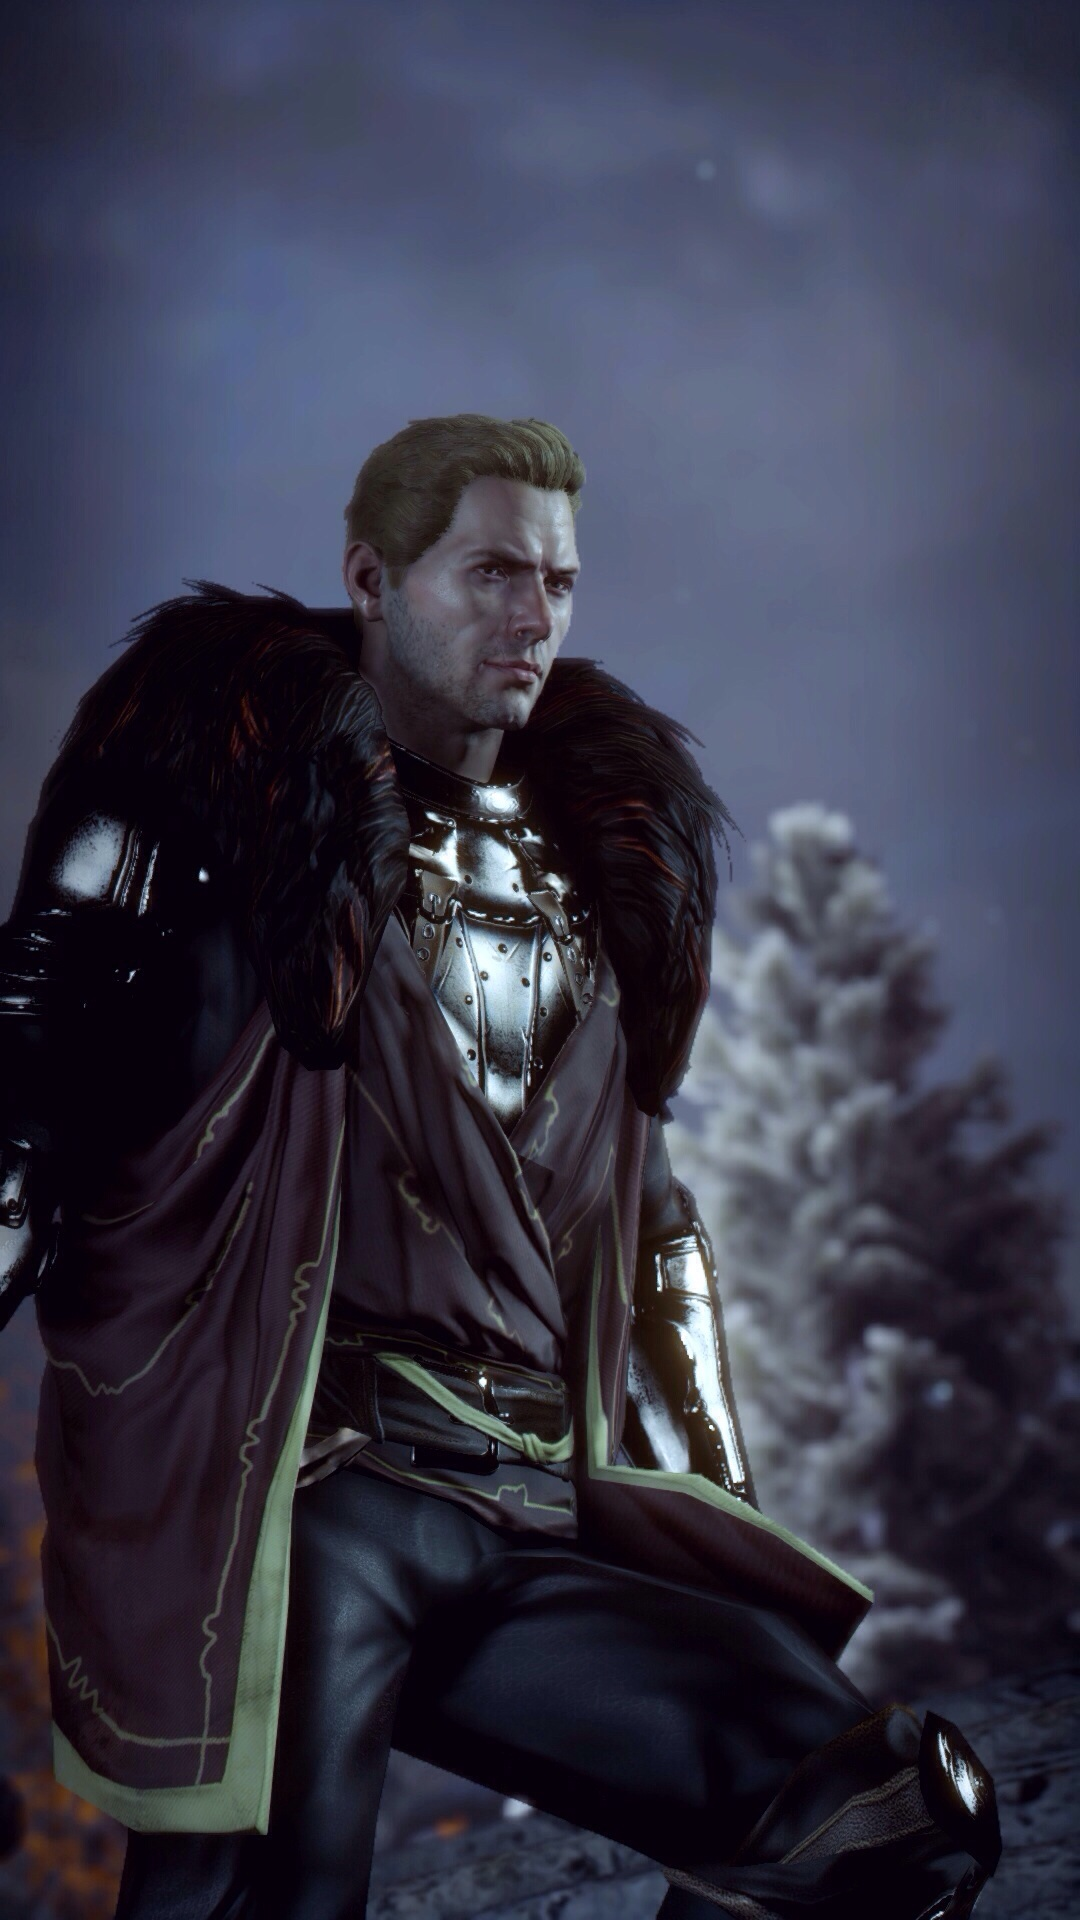 Dragon Age Inquisition Cullen Rutherford Photo 38925704 Fanpop